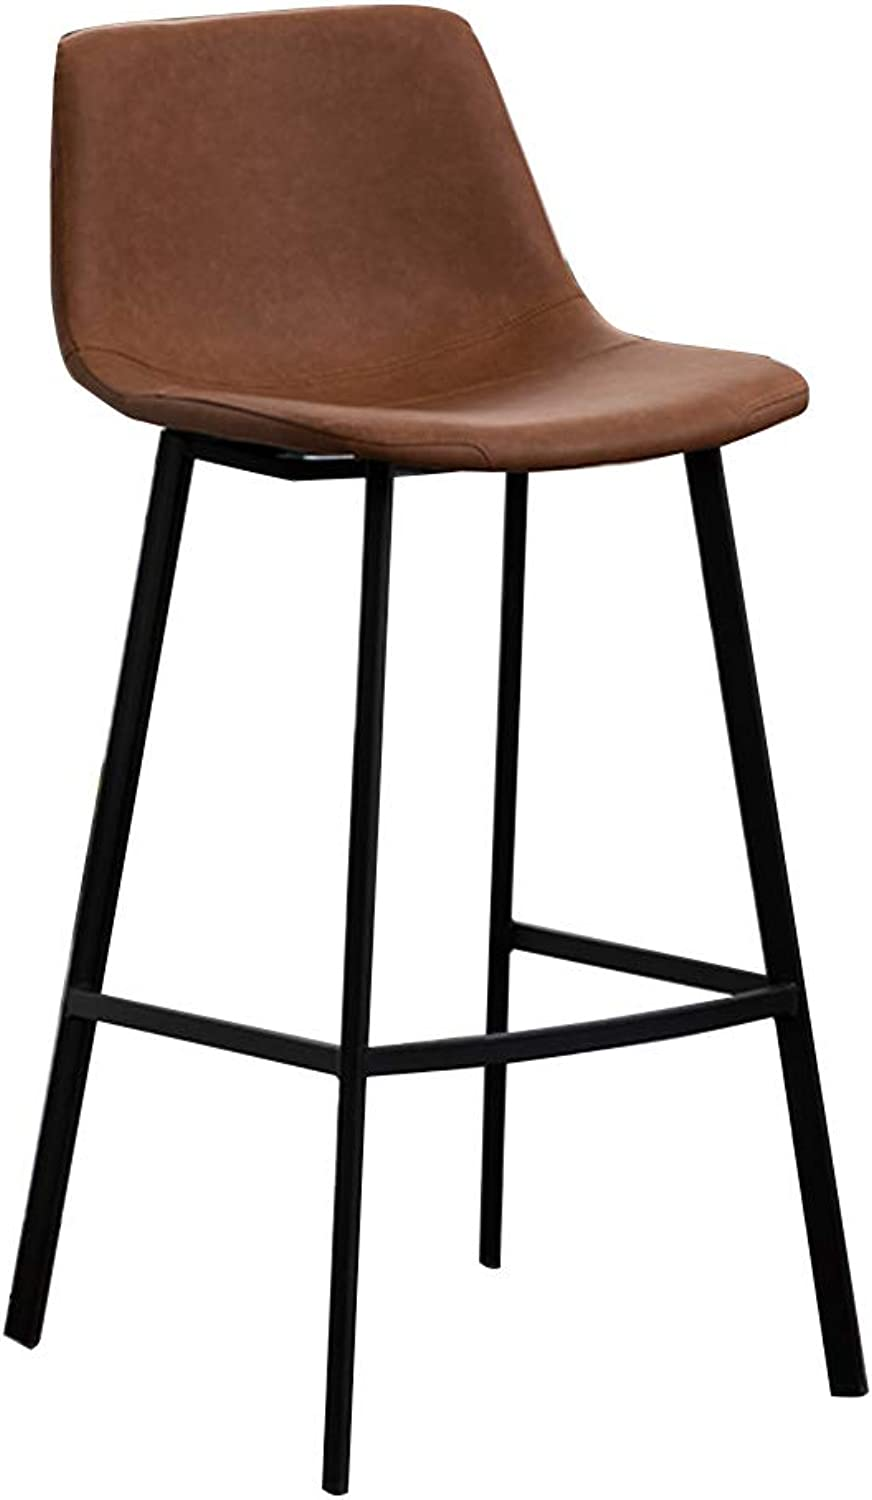 Modern Bar Stools with Back Counter Height Bistro Pub Side Chairs Barstools Footrest   Metal Legs Faux Leather Seat for Home Kitchen, Brown